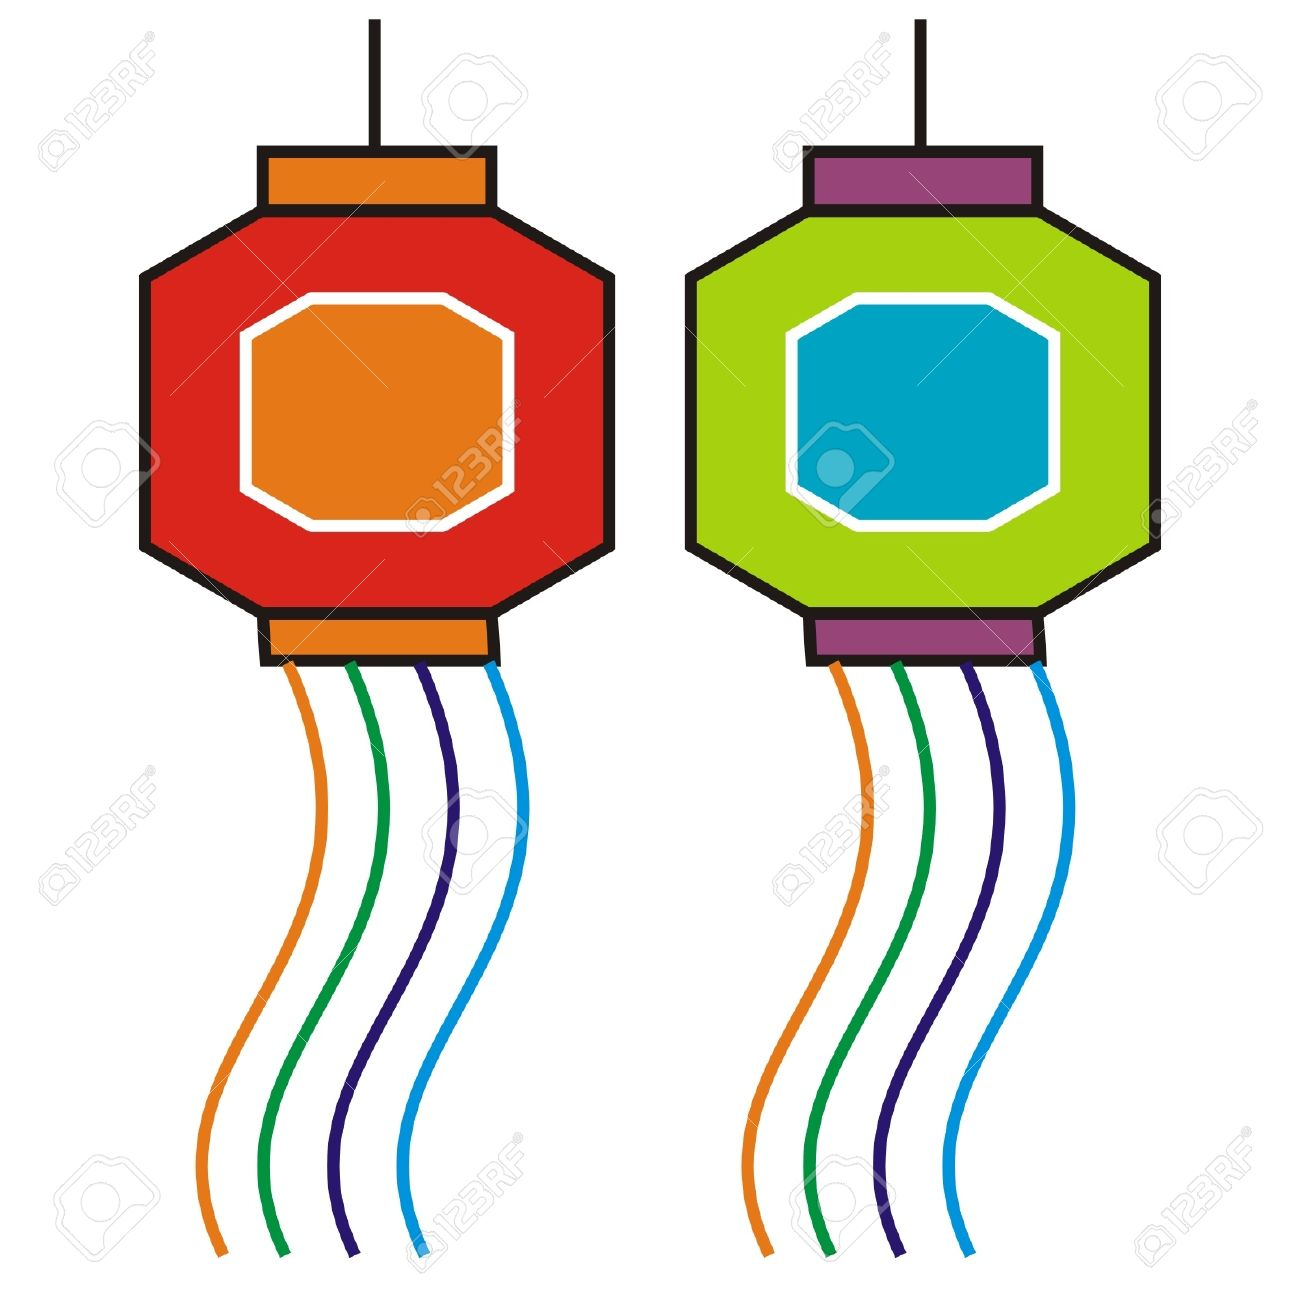 Diwali Lamp Stock Vector